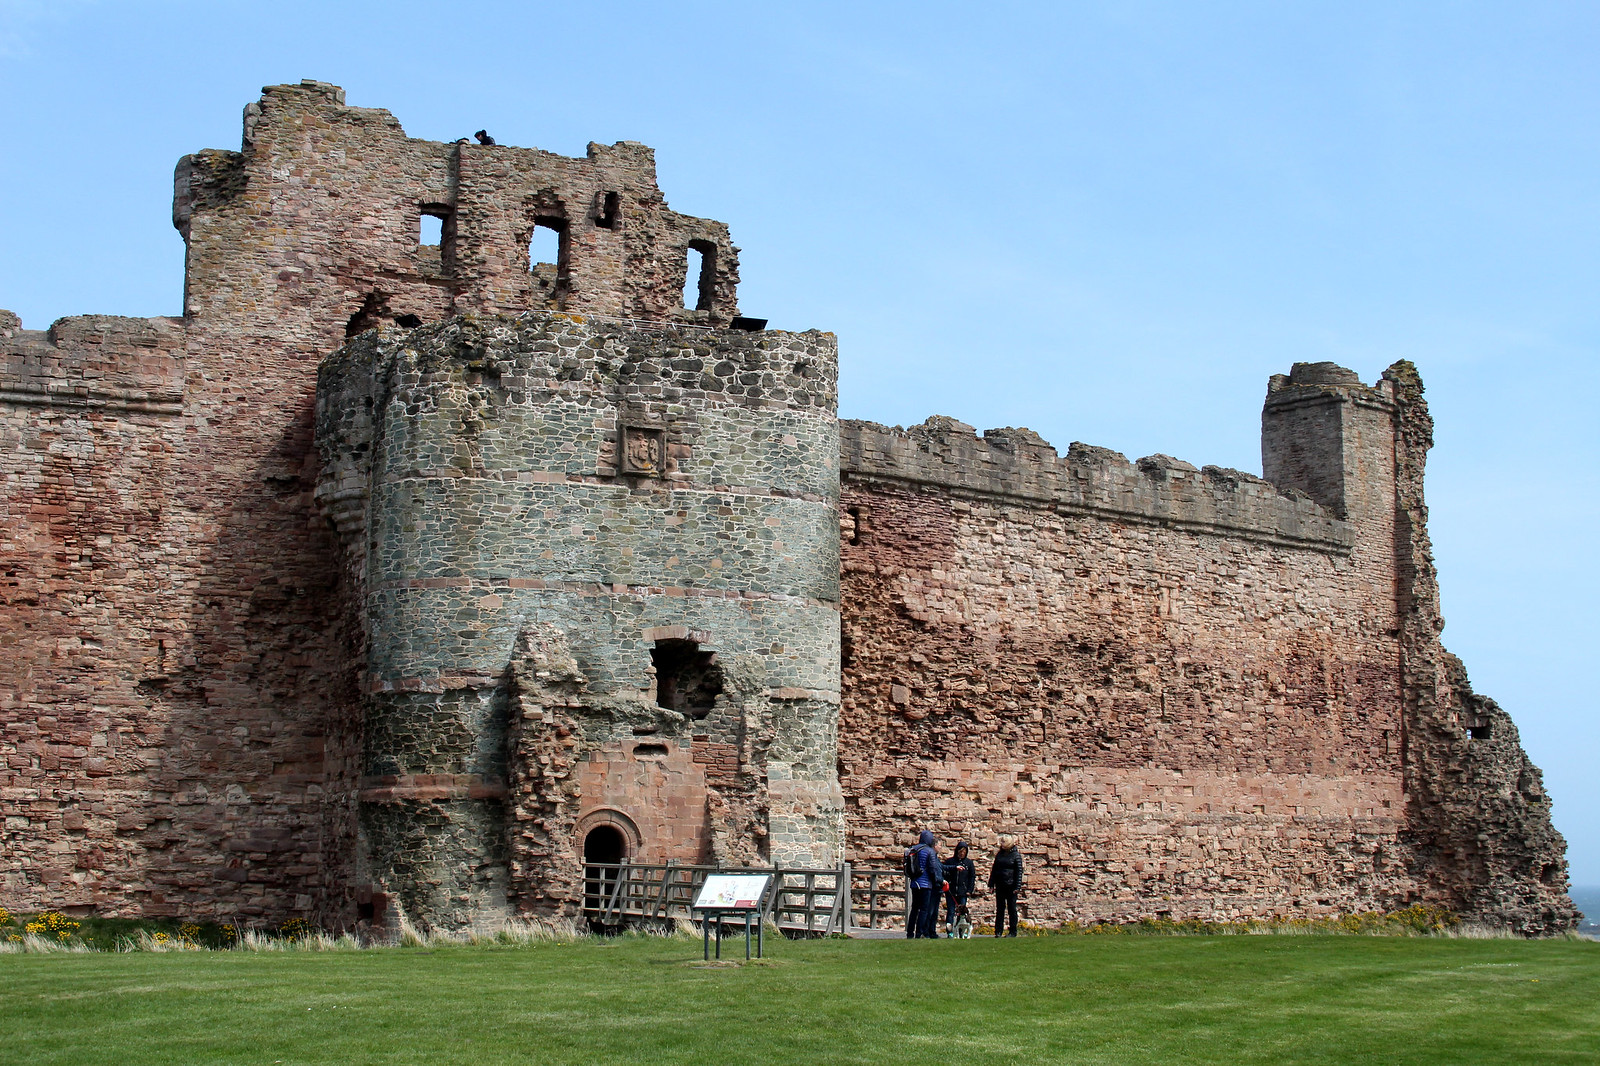 Tantallon Castle, North Berwick, East Lothian, Scotland UK travel lifestyle blogger